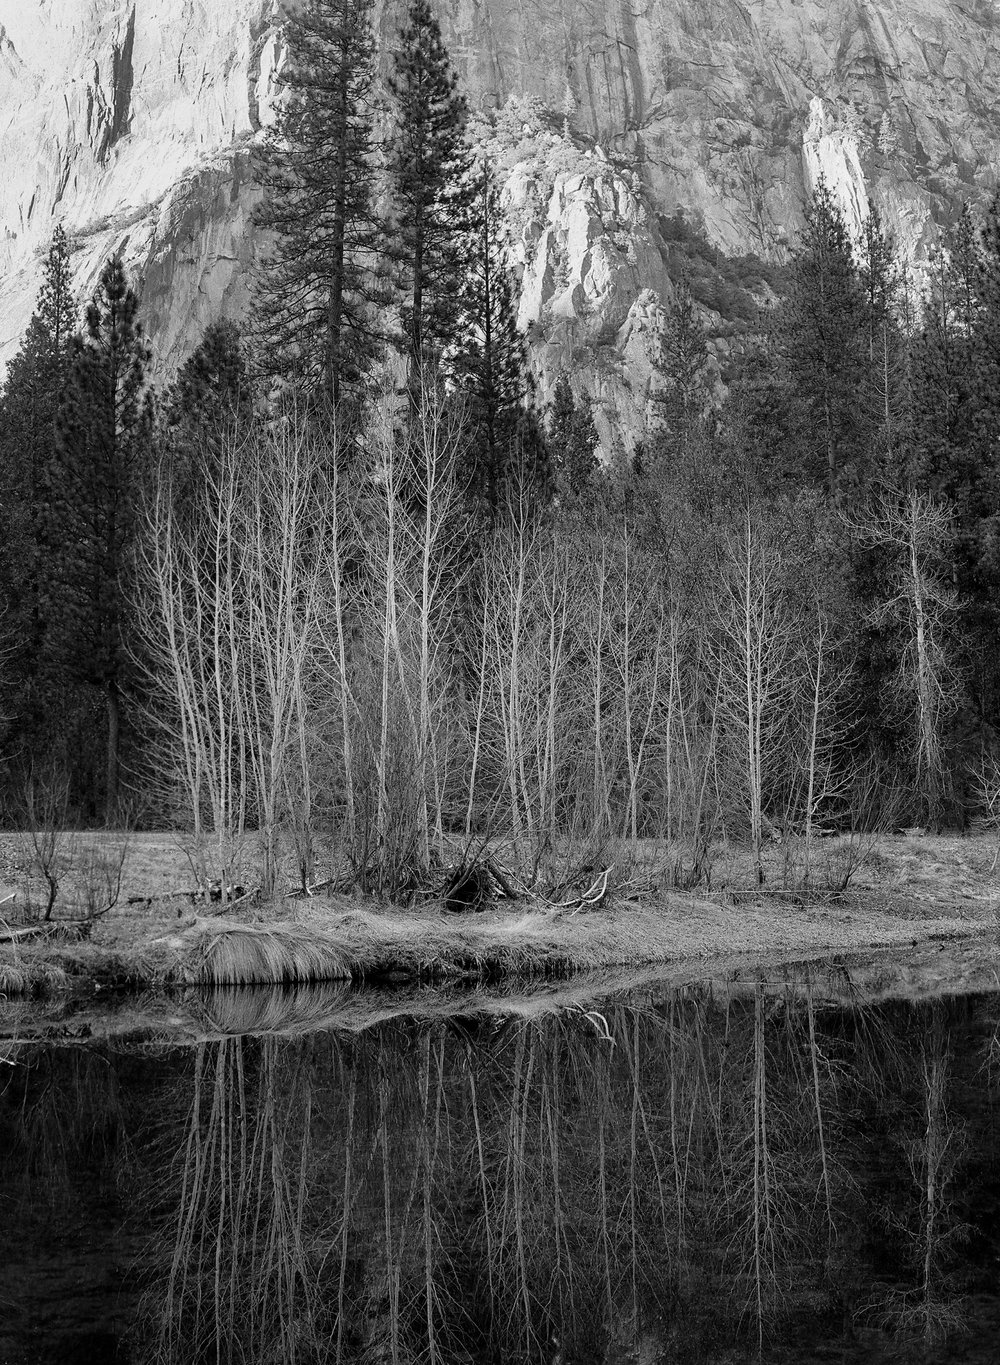 Merced Reflection, Yosemite Valley